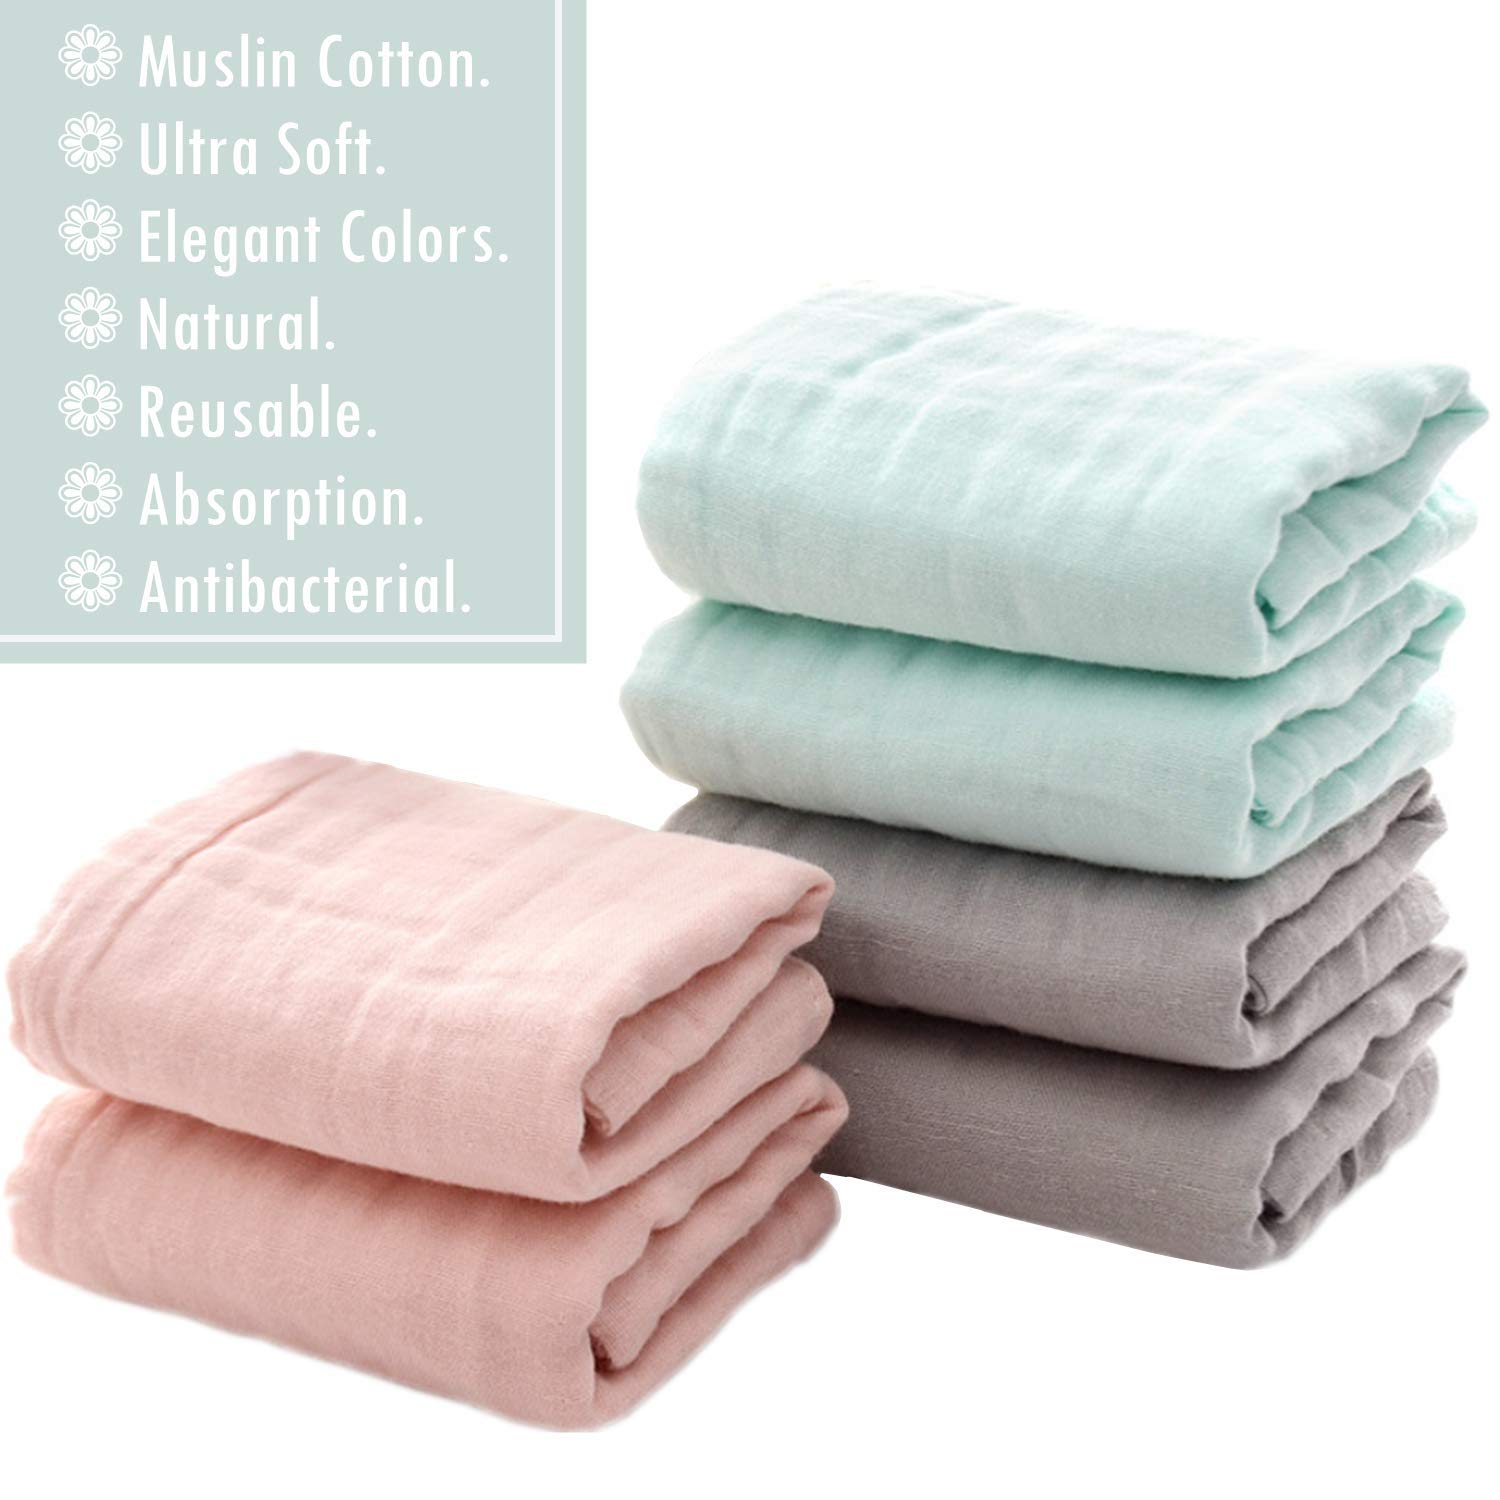 Baby Wipes for Baby Sensitive Skin Set of 6 Muslin Face Towels for Newborn,Ultra Soft Wash Cloths for Babies Perfect Baby Shower Gift.12X12 Baby Bath Washcloths by MUKIN